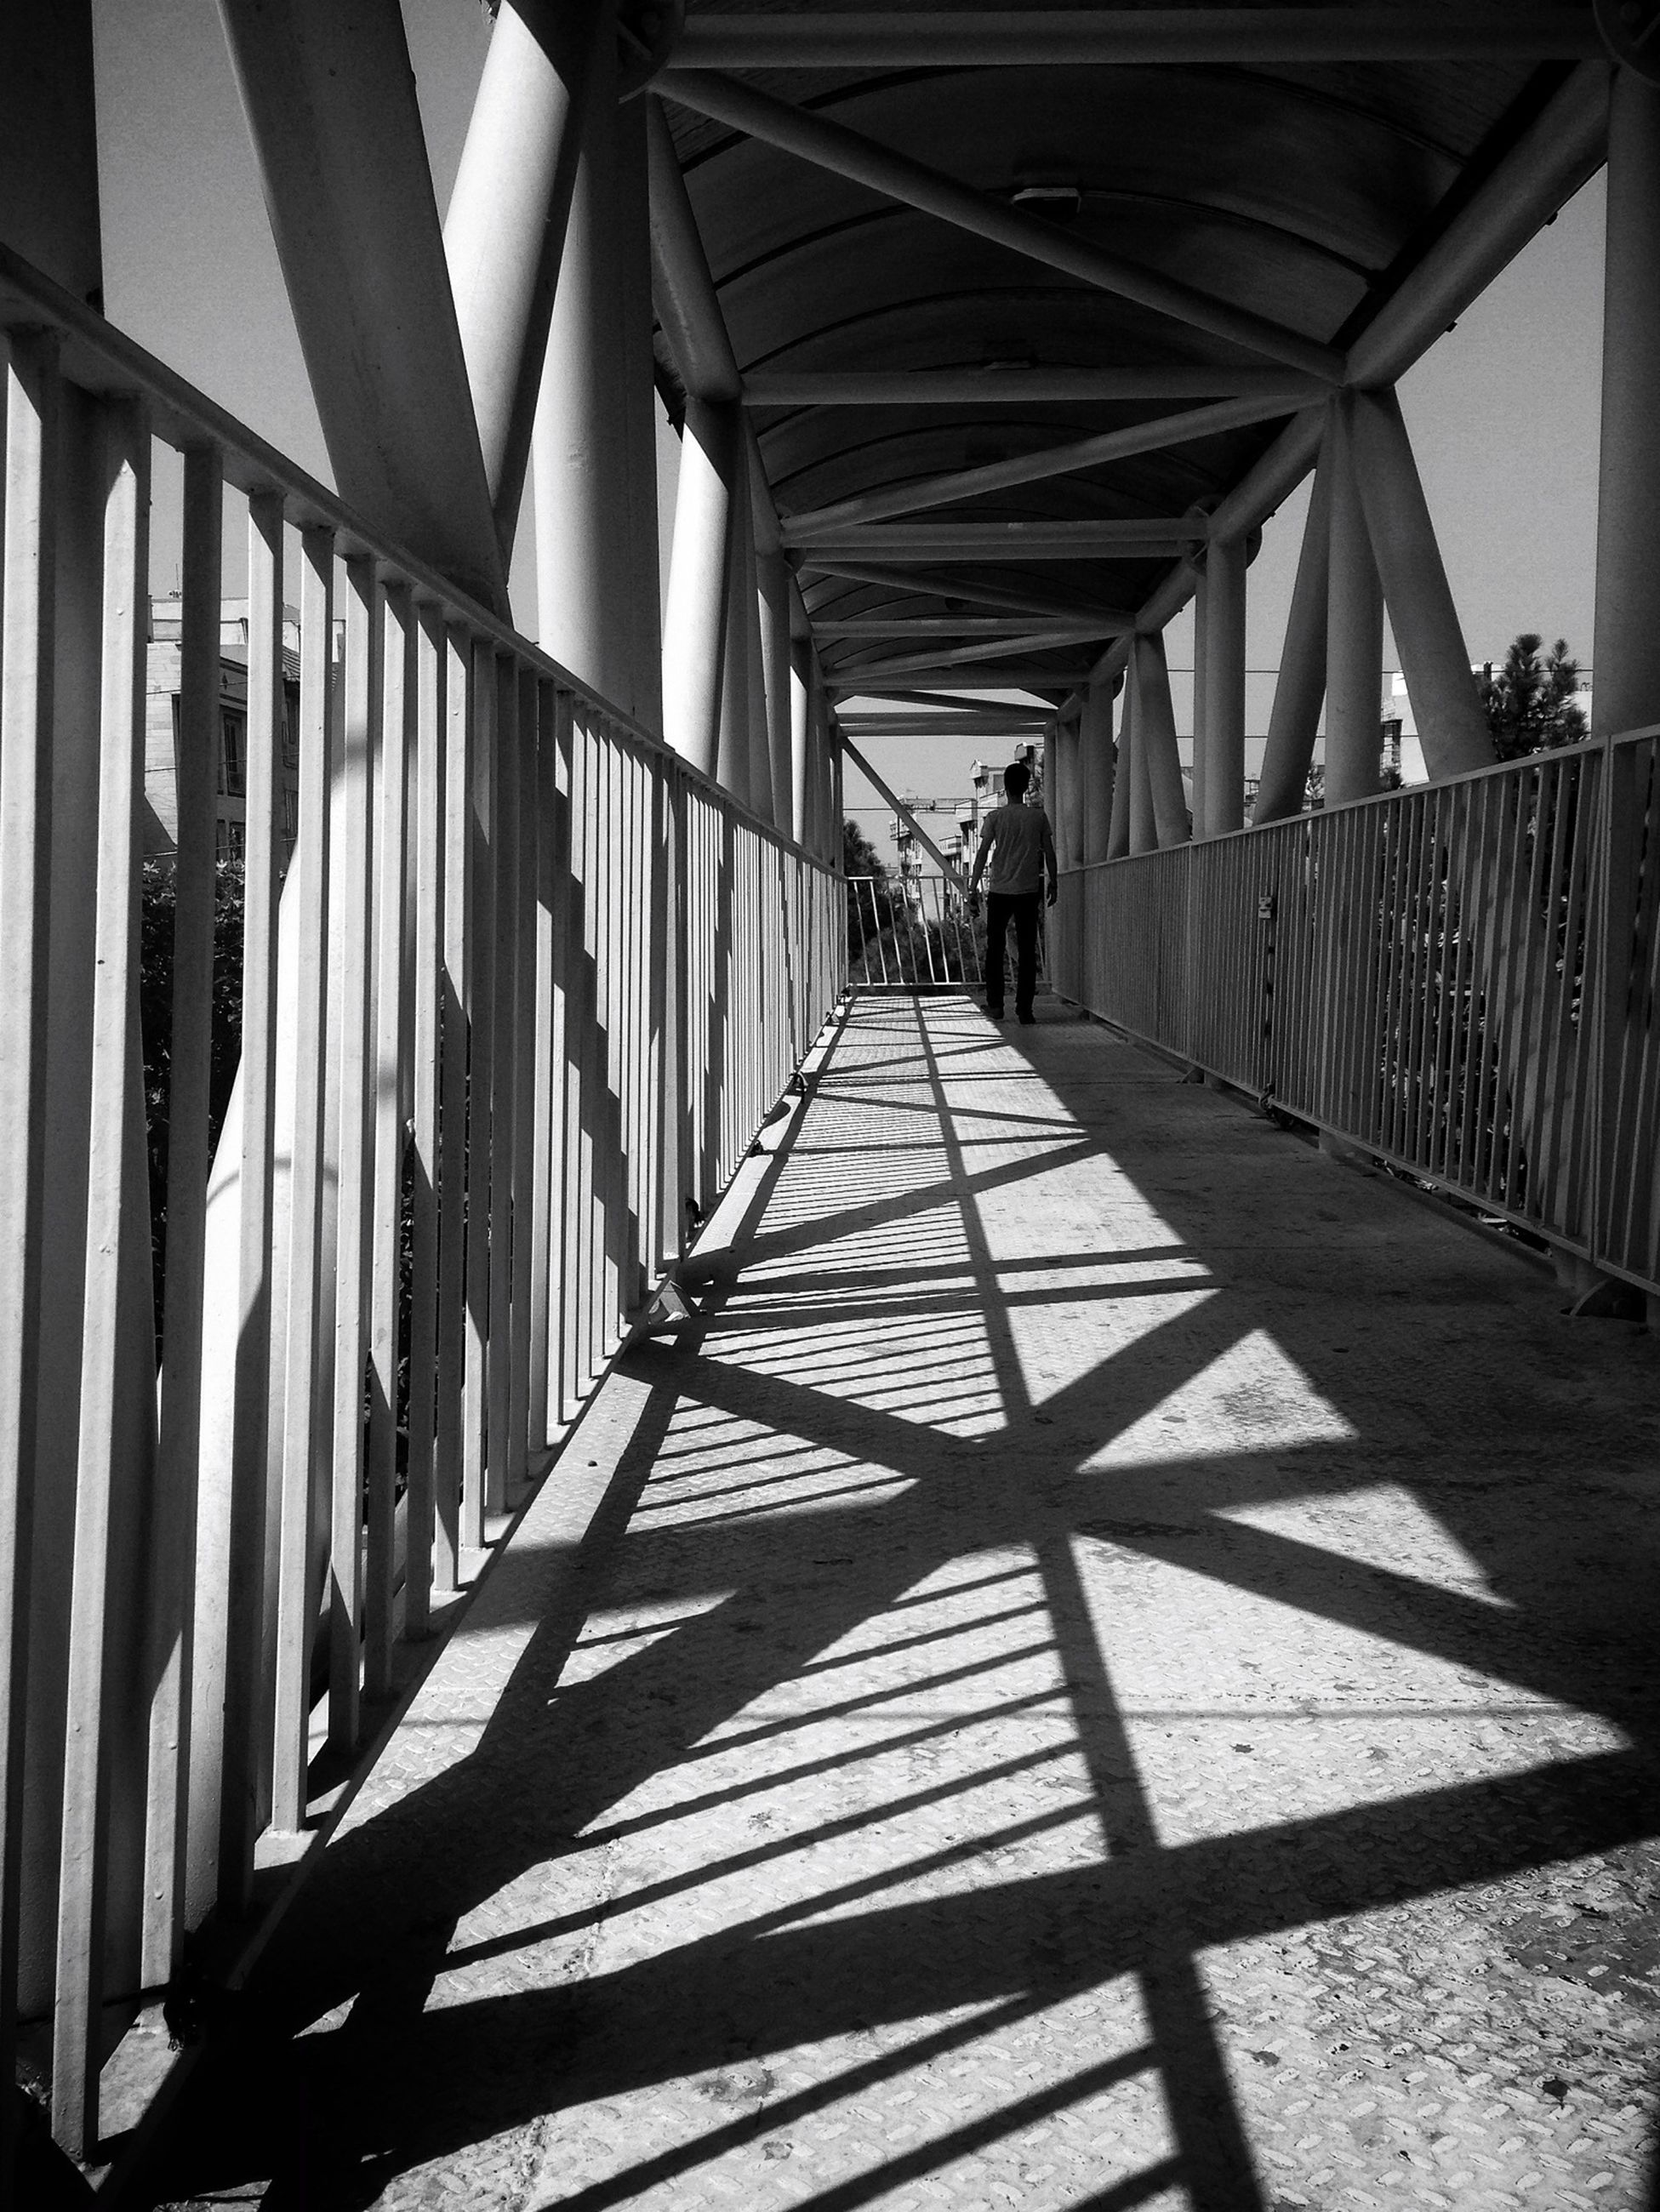 built structure, architecture, the way forward, diminishing perspective, connection, vanishing point, bridge - man made structure, railing, metal, long, transportation, shadow, sunlight, indoors, empty, day, in a row, narrow, footbridge, walkway